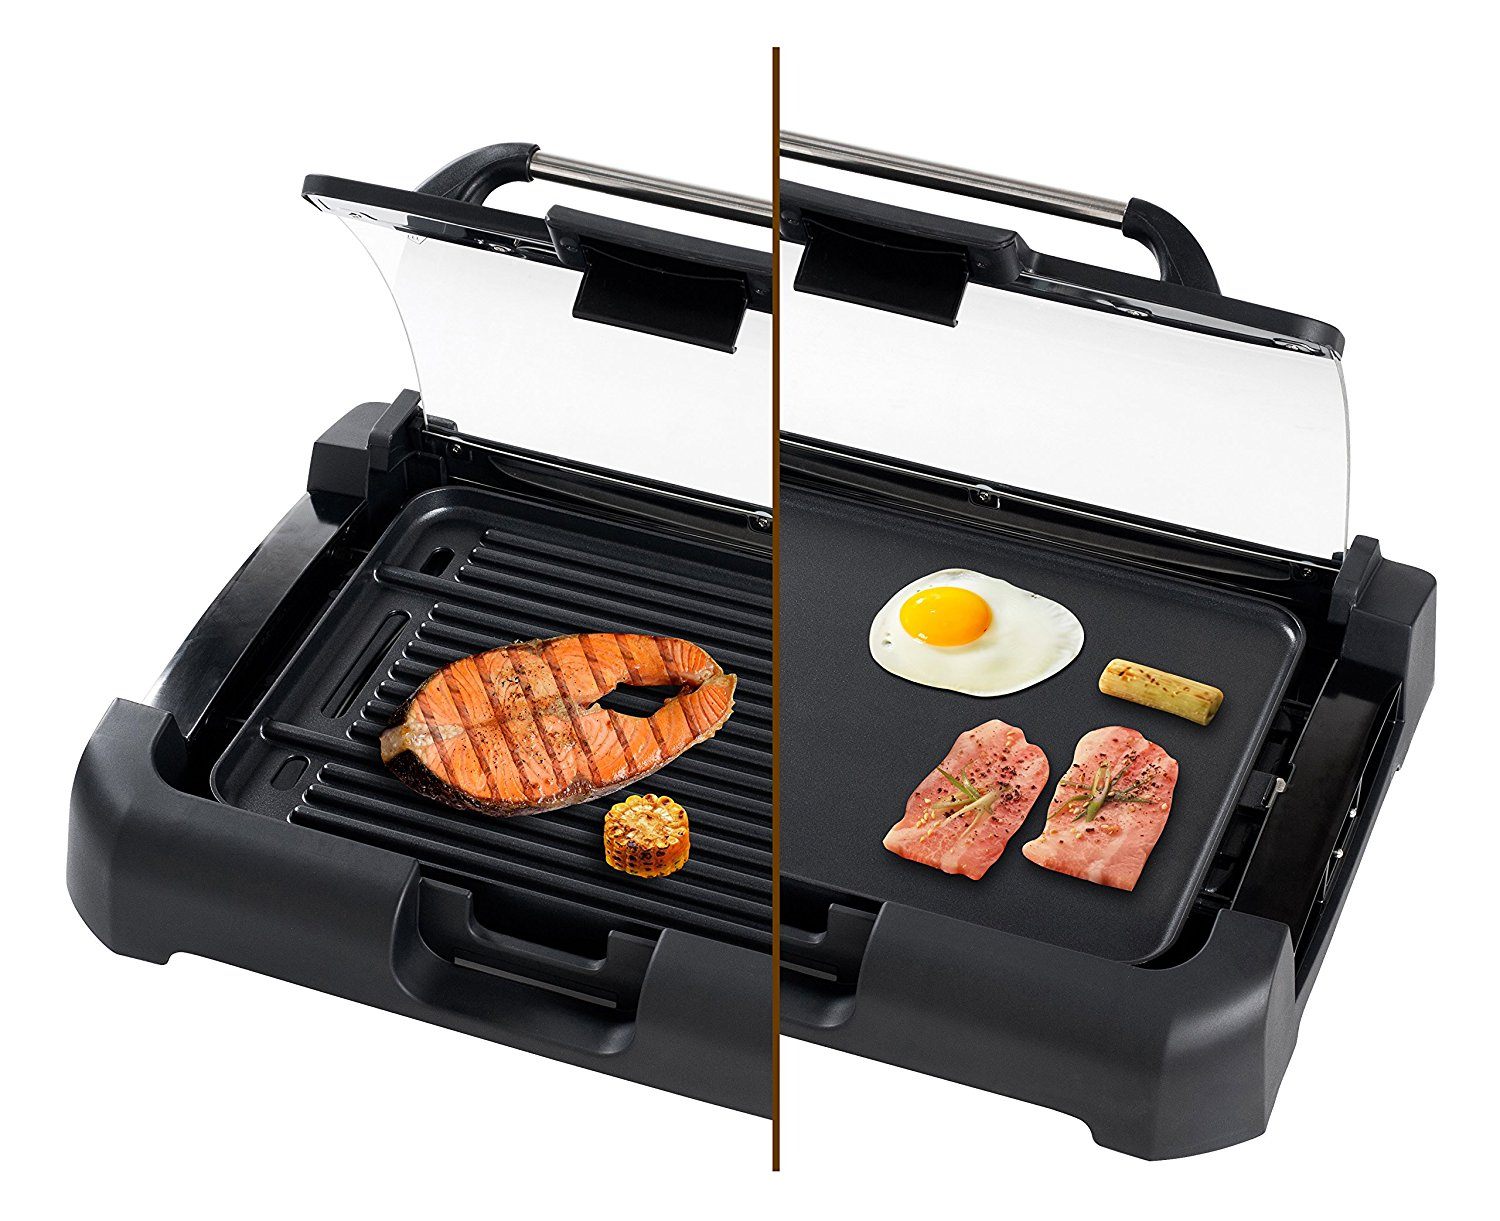 Secura GR1503XL 1700W Electric Reversible 2 in 1 Grill